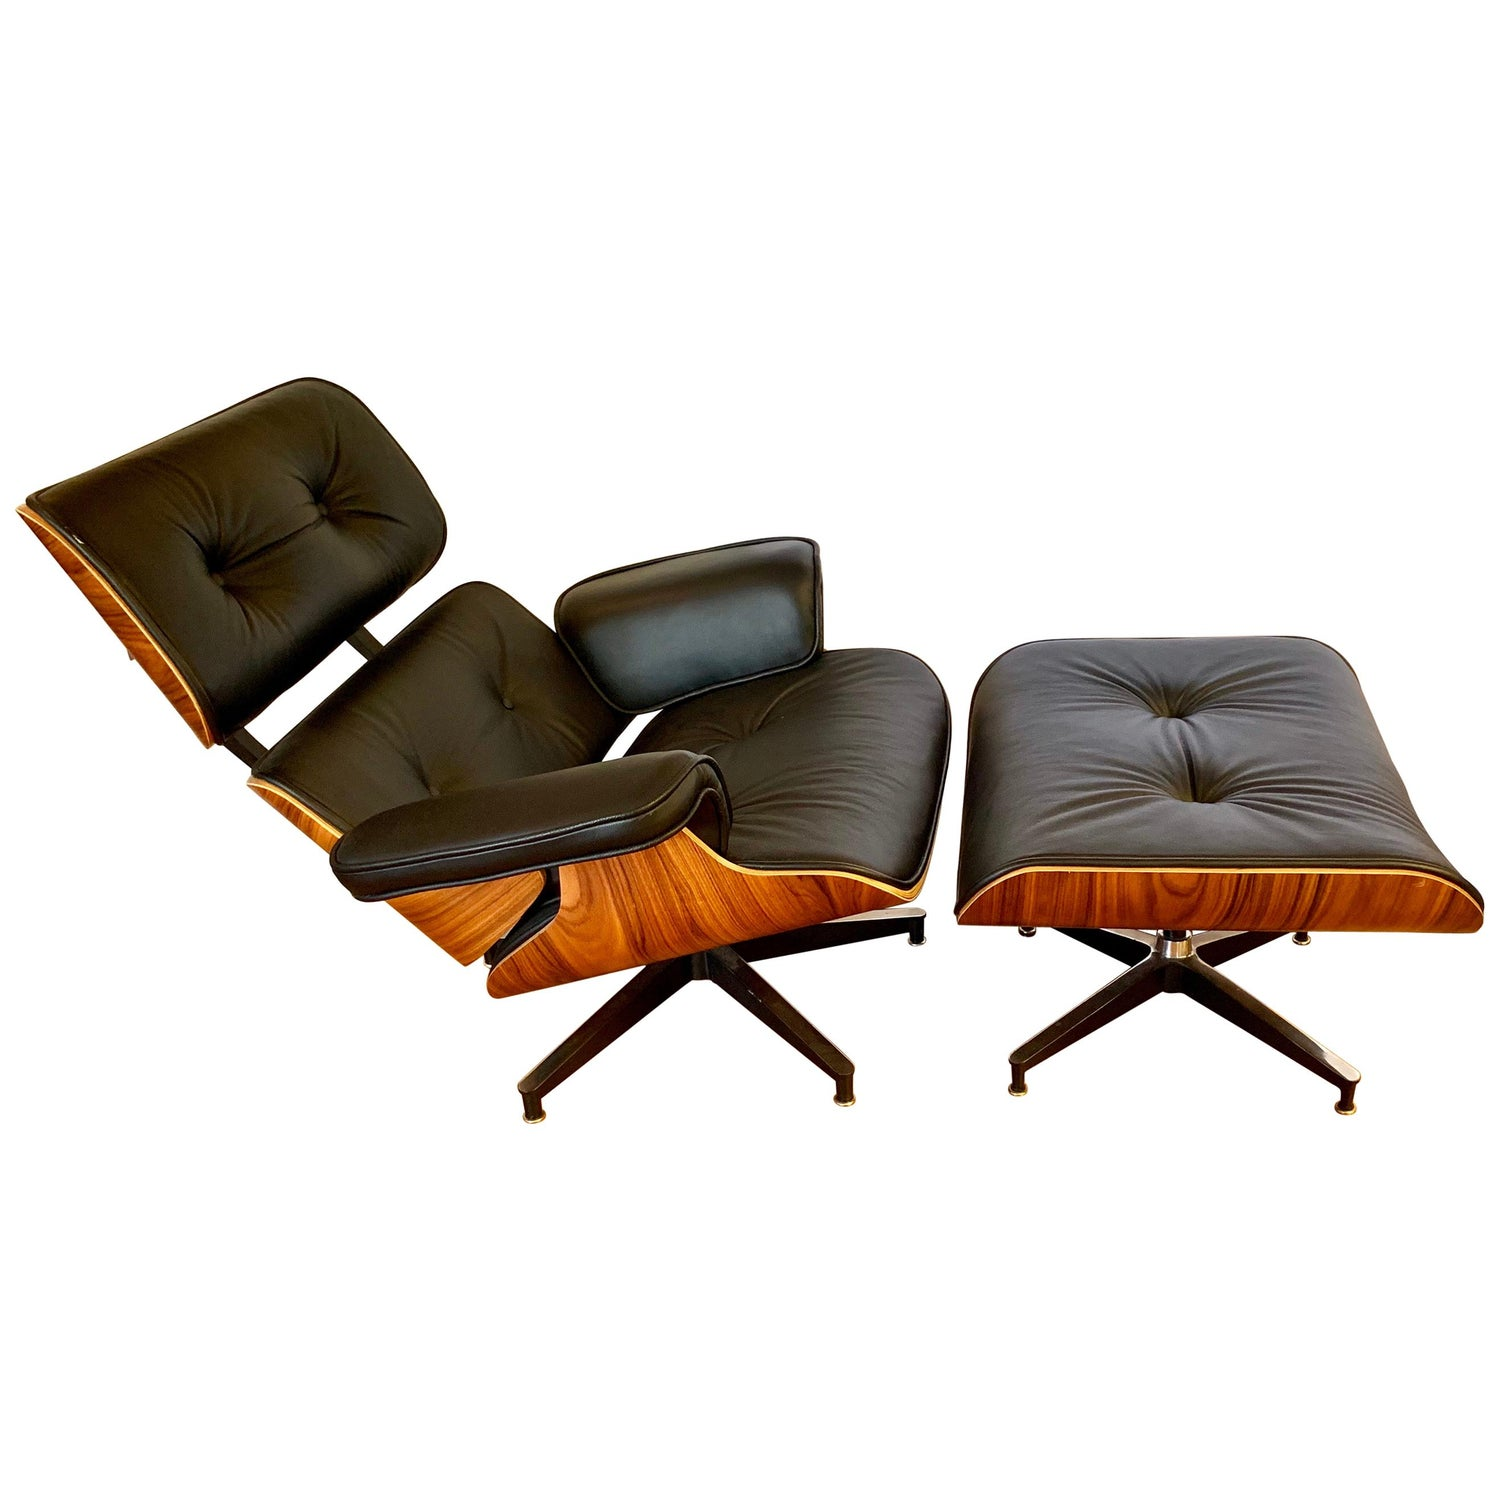 Fine Eames Iconic Herman Miller Style Lounge Chair And Ottoman Beatyapartments Chair Design Images Beatyapartmentscom